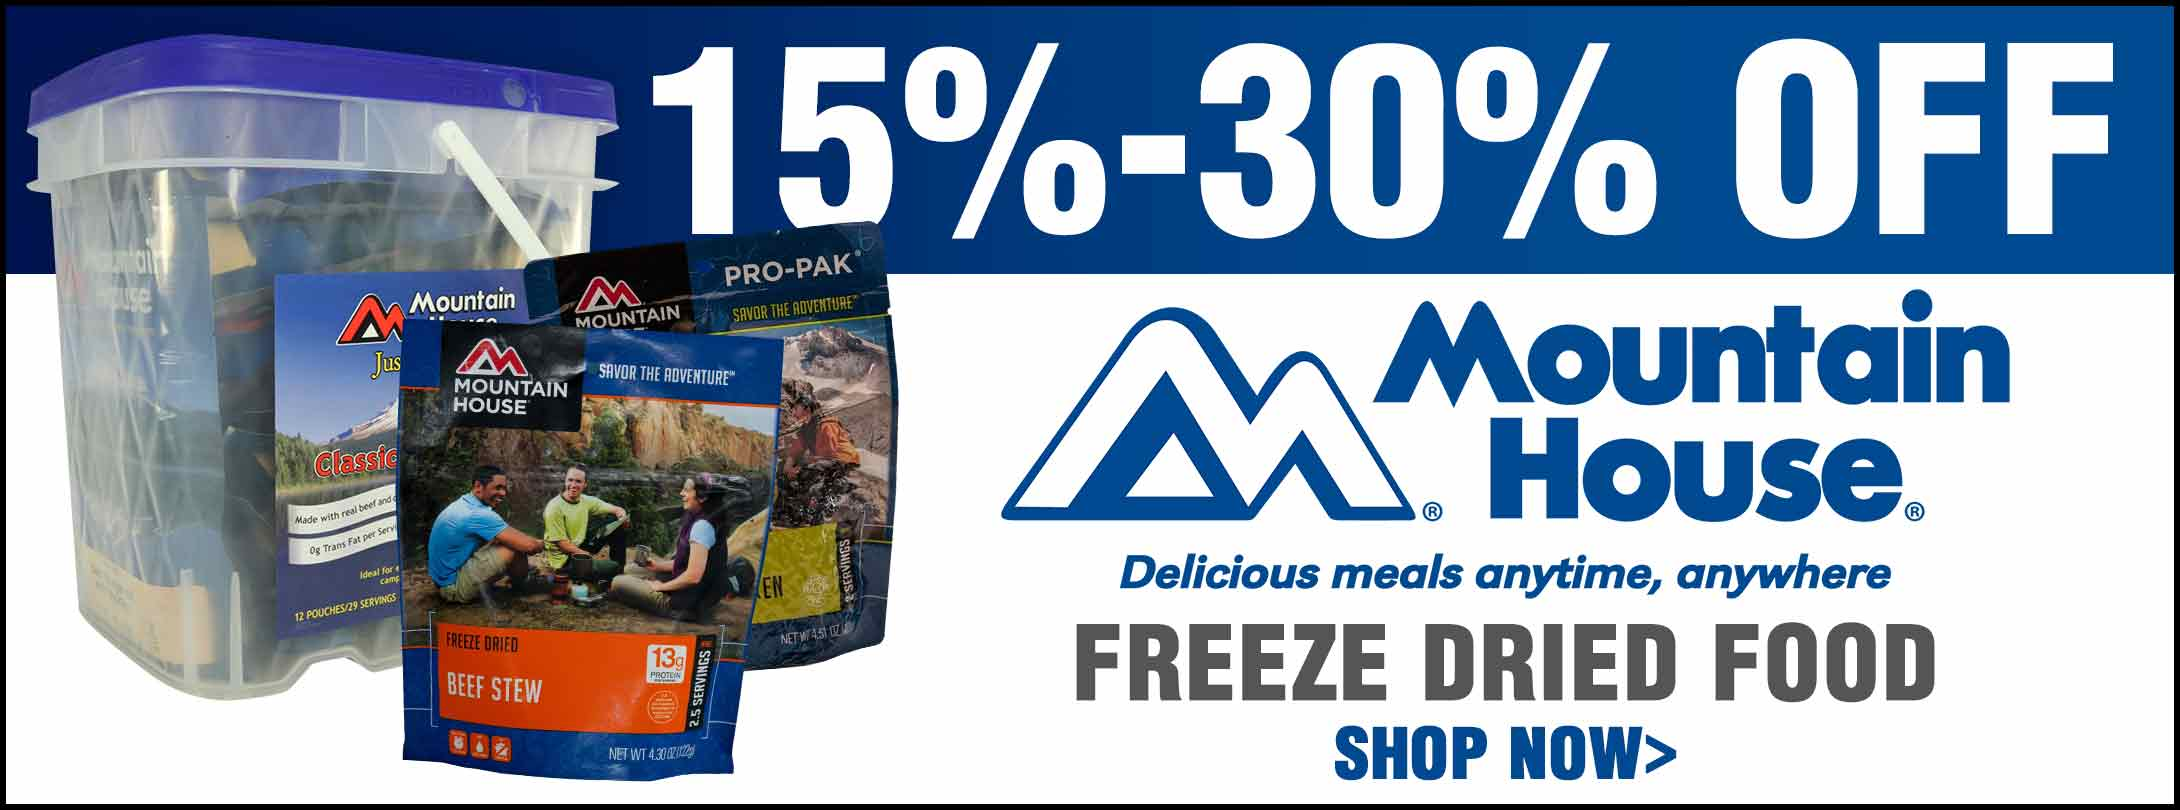 Save on Mountain House Freeze Dried Food!